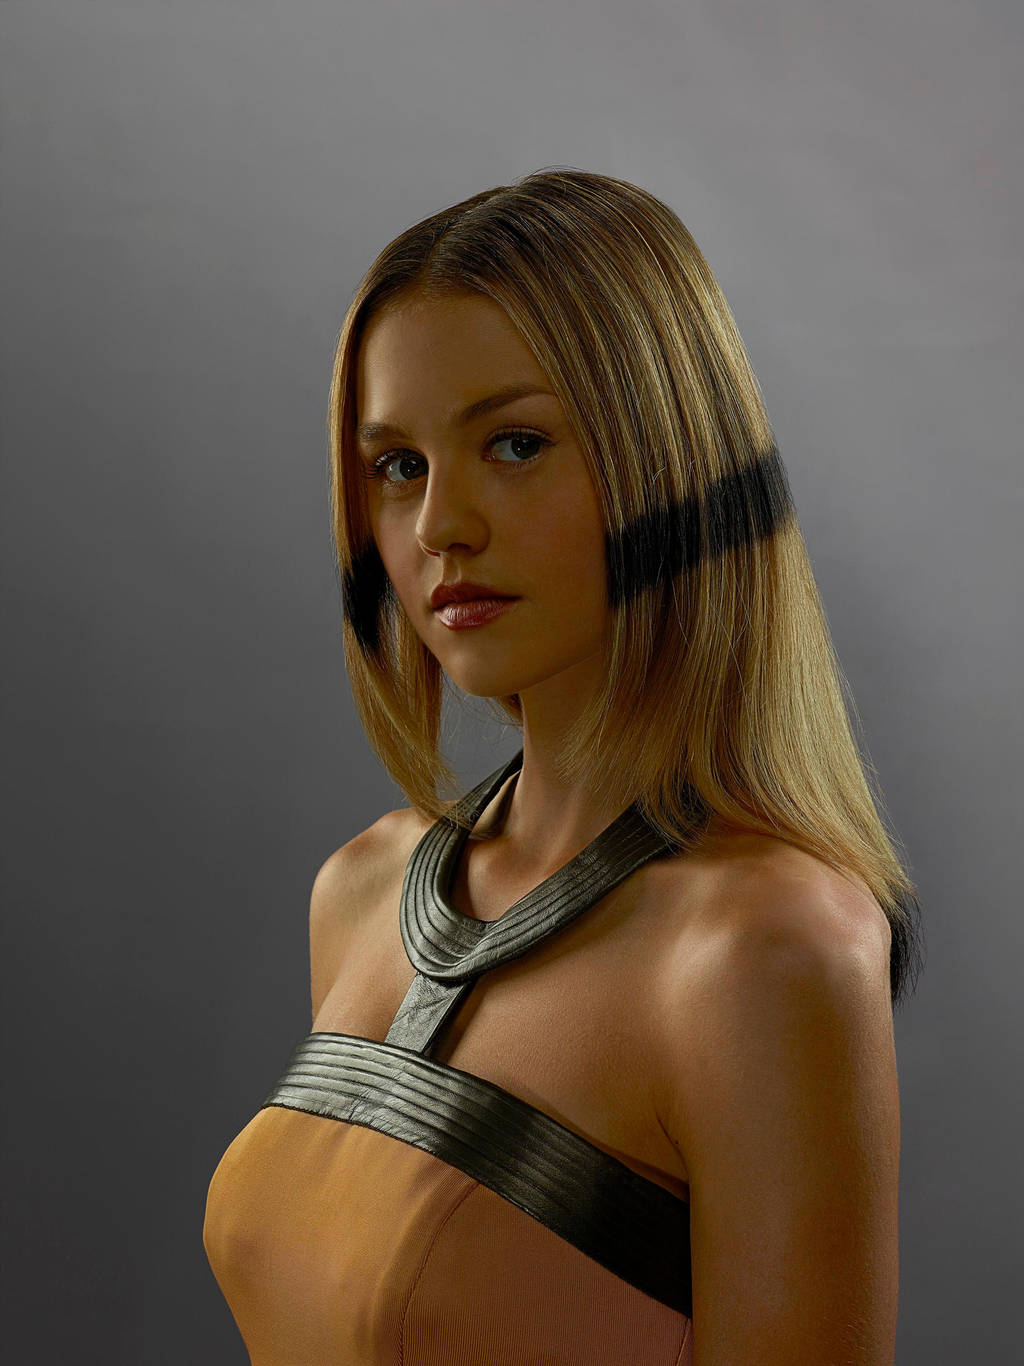 Marvel's Inhumans Isabelle Cornish as Crystal by Artlover67